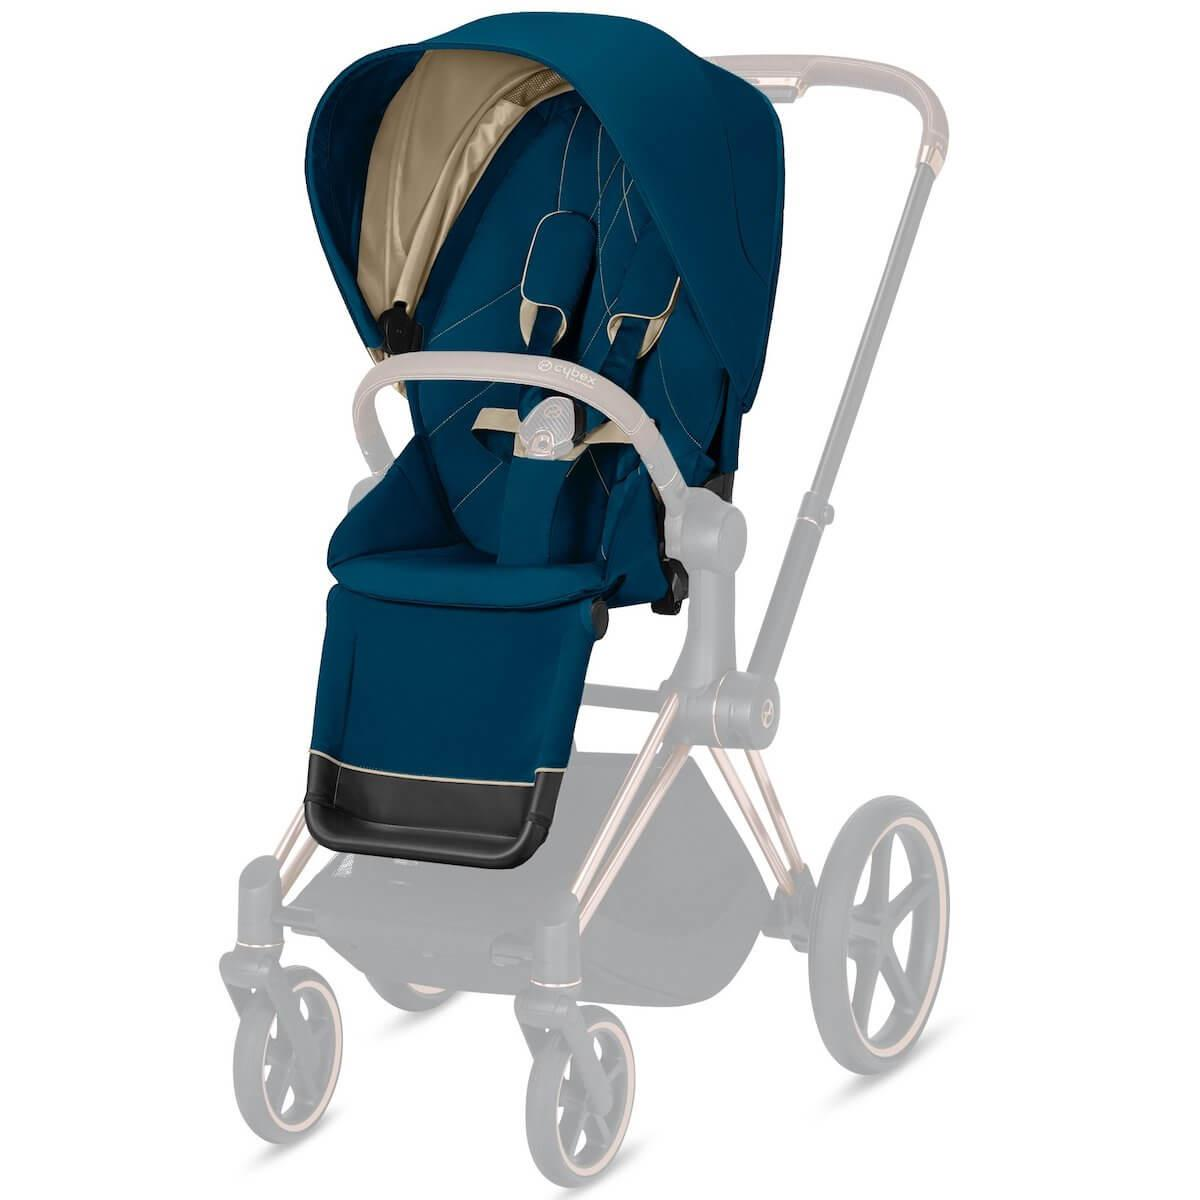 Assise-habillage poussette PRIAM Cybex Mountain blue-turqoise